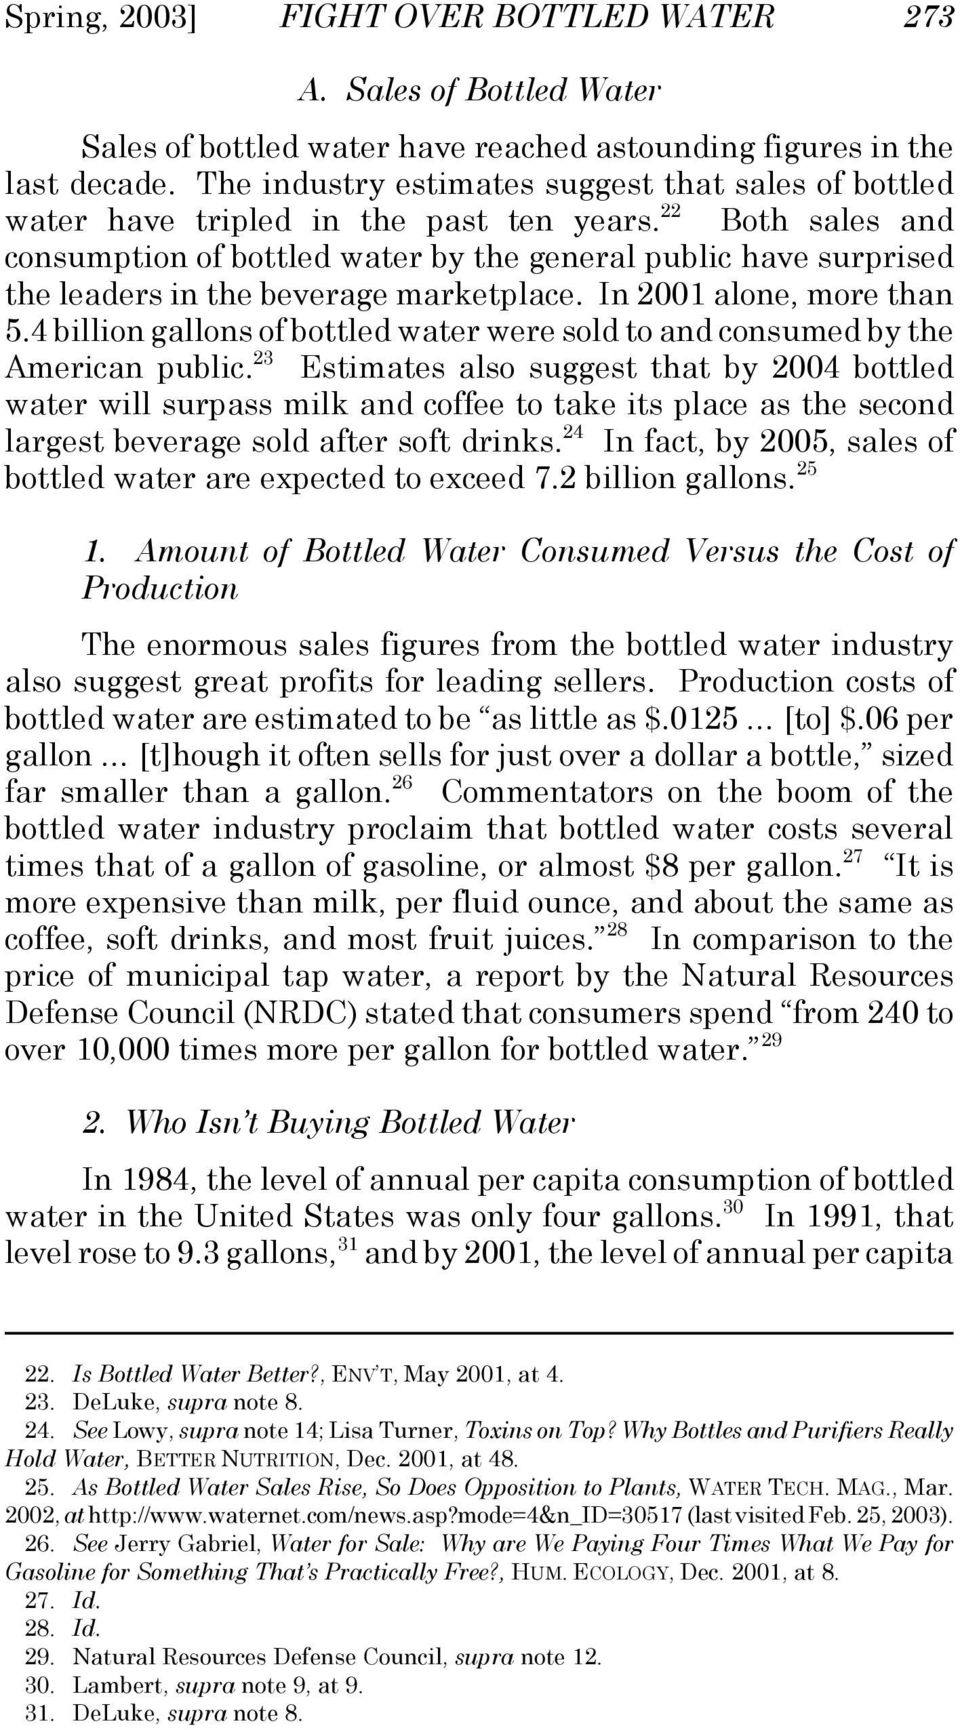 22 Both sales and consumption of bottled water by the general public have surprised the leaders in the beverage marketplace. In 2001 alone, more than 5.